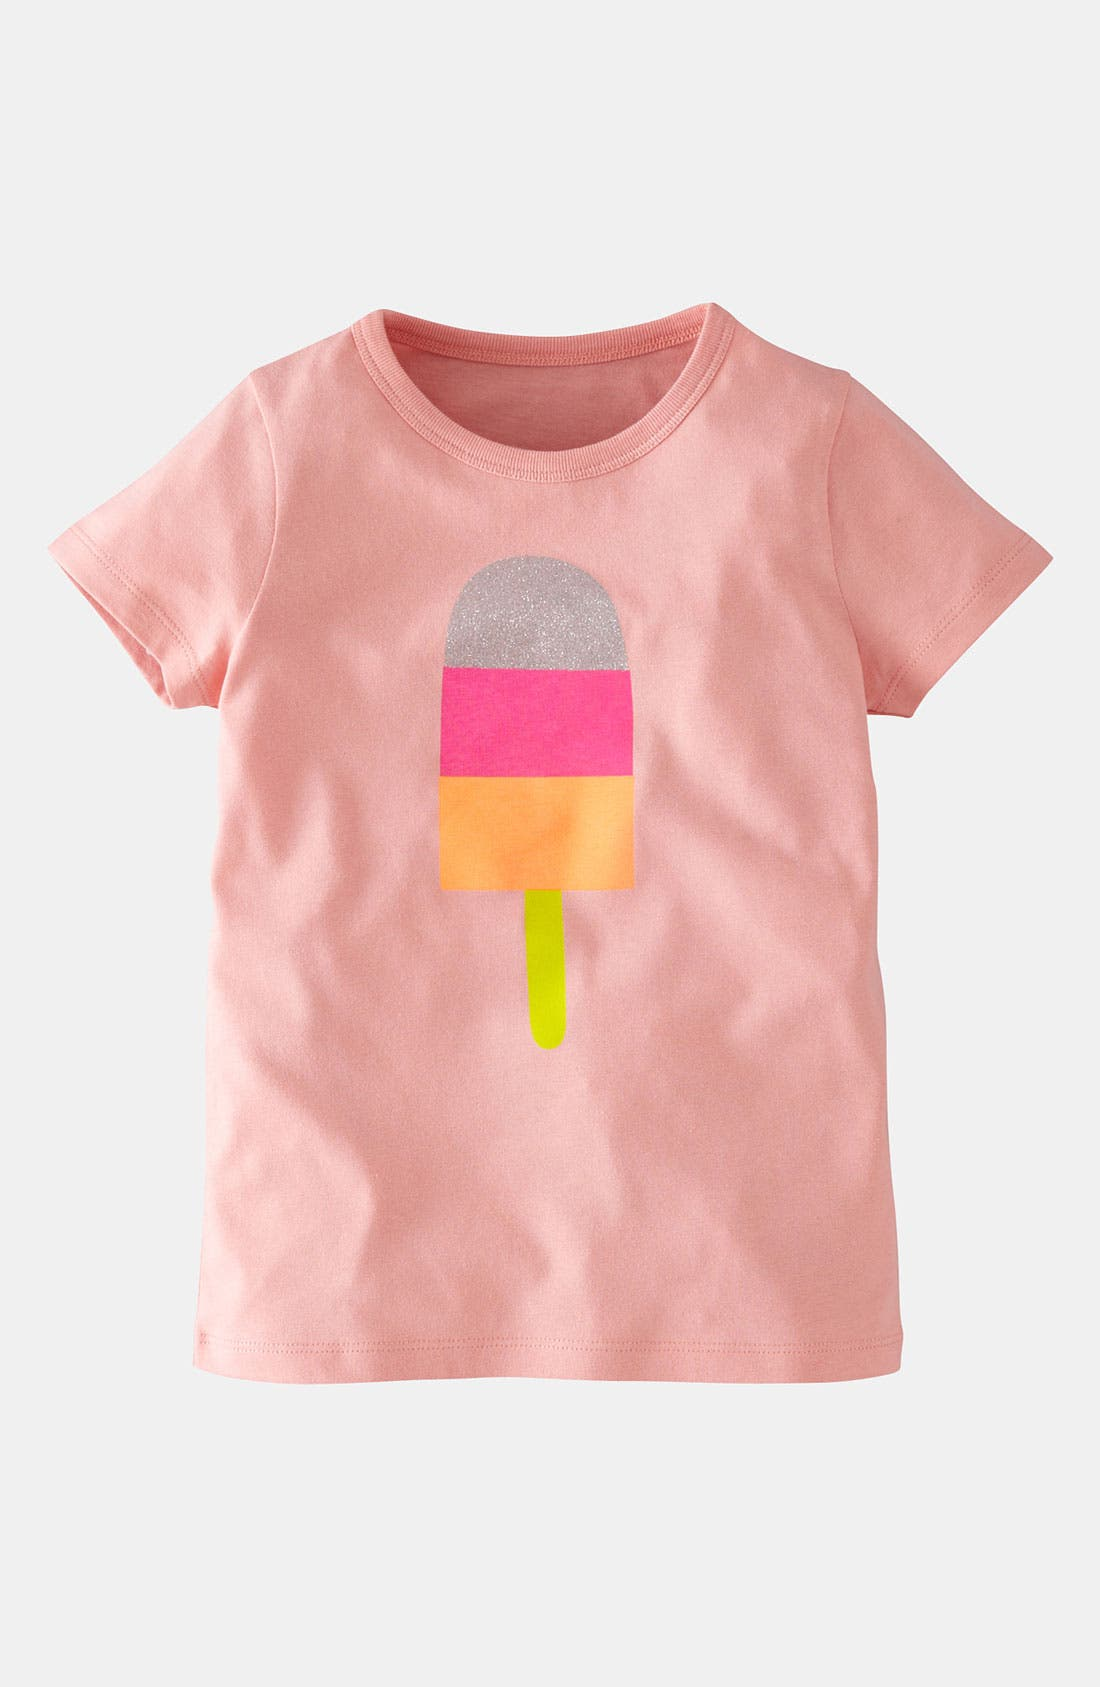 Alternate Image 1 Selected - Mini Boden 'Glittery' Graphic Tee (Little Girls & Big Girls)